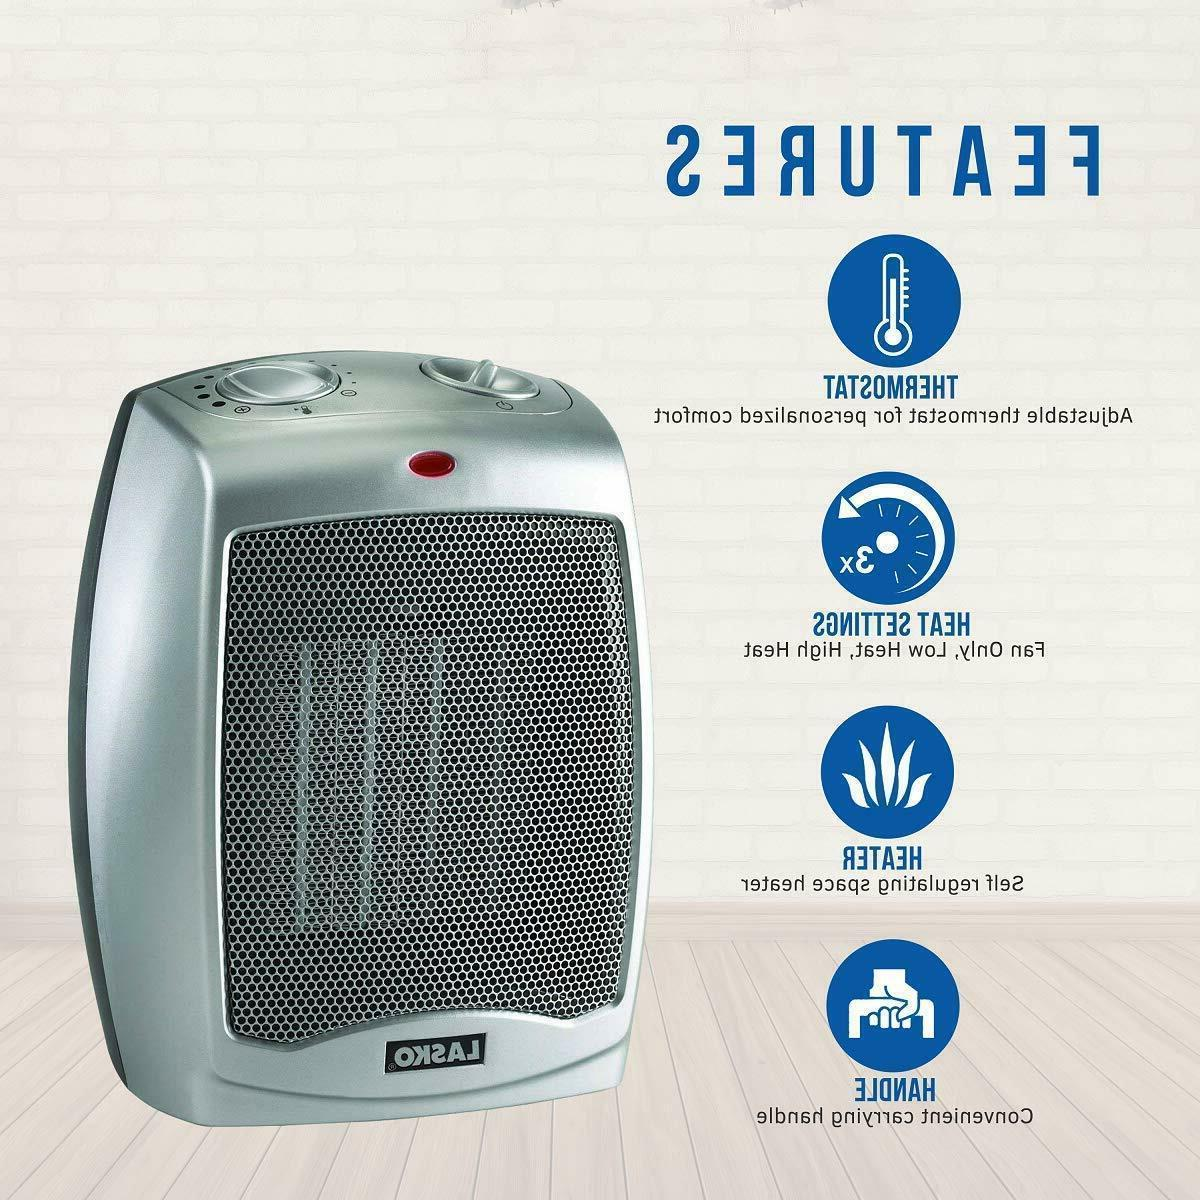 ceramic portable space 754200 heater with adjustable